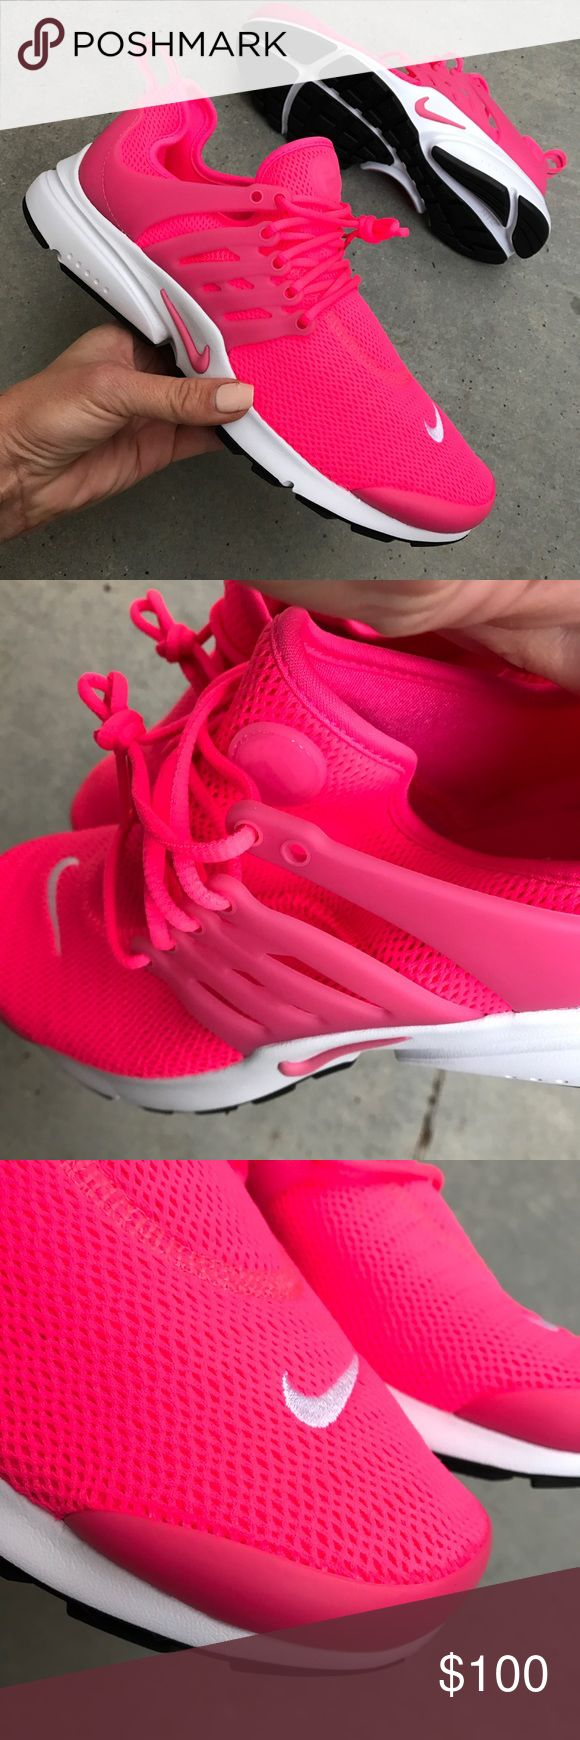 online store ee69d 10bd0 closeout nike air presto sizing 4401c 27958